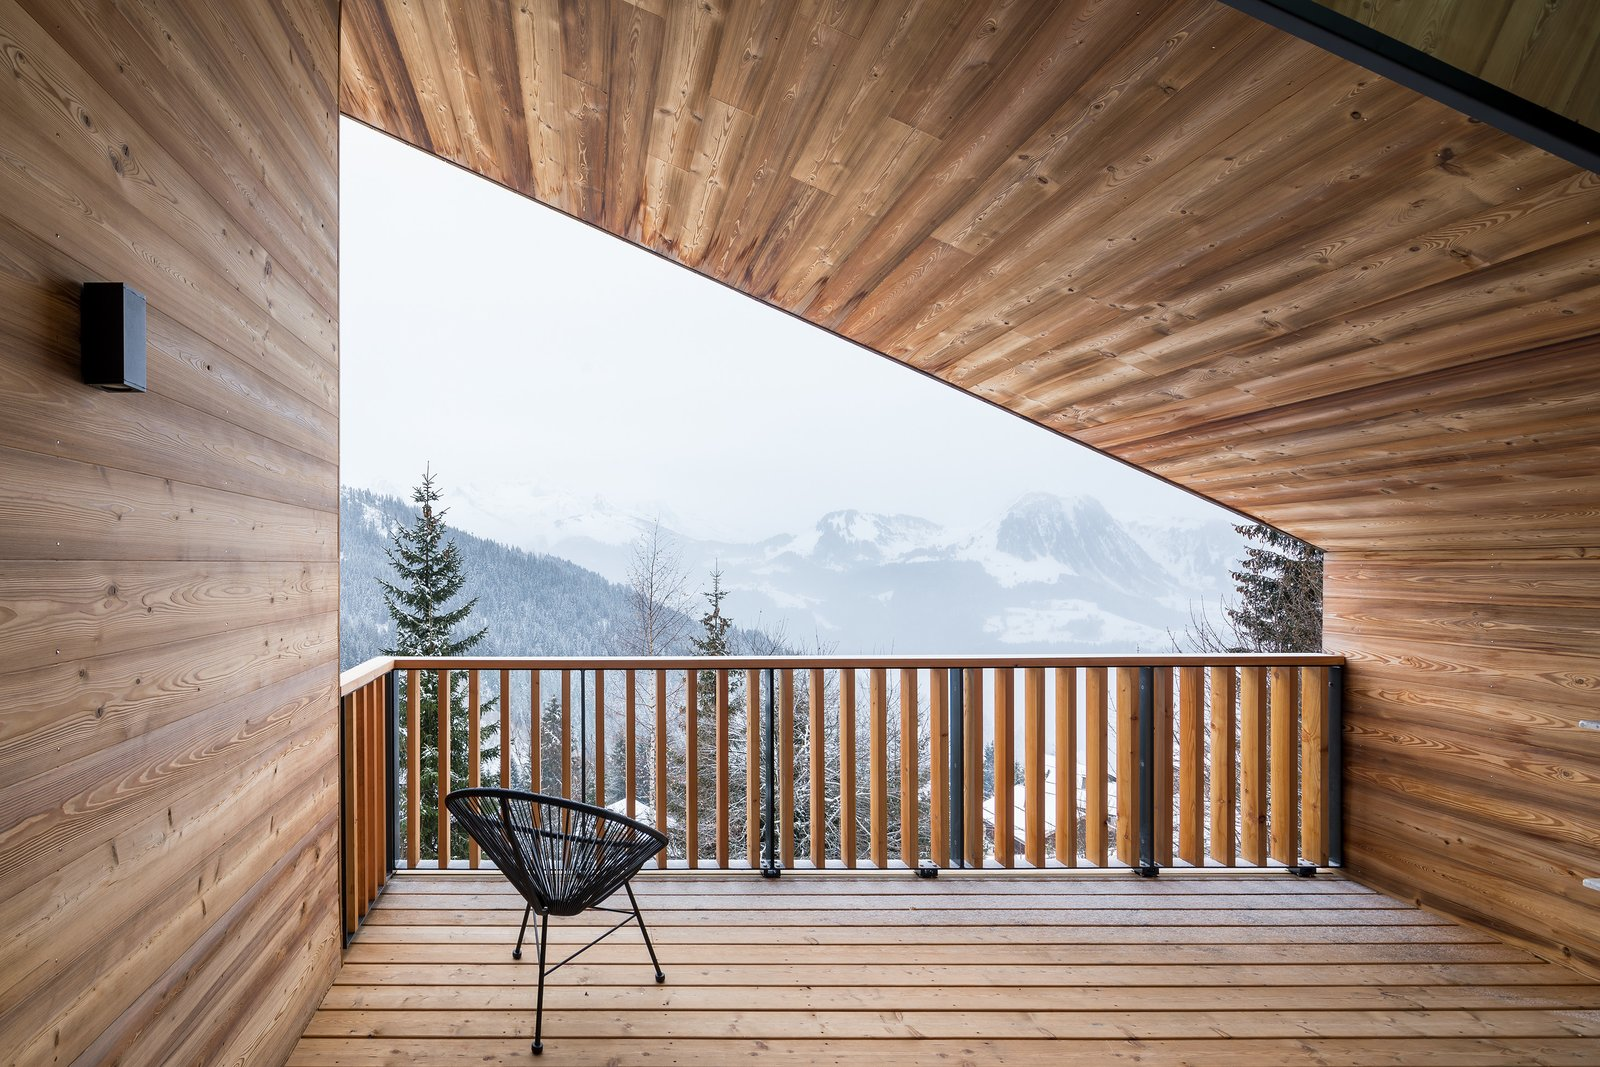 Tagged: Outdoor, Rooftop, Trees, Wood Patio, Porch, Deck, Decking Patio, Porch, Deck, Wood Fences, Wall, and Vertical Fences, Wall.  Mountain House by studio razavi architecture